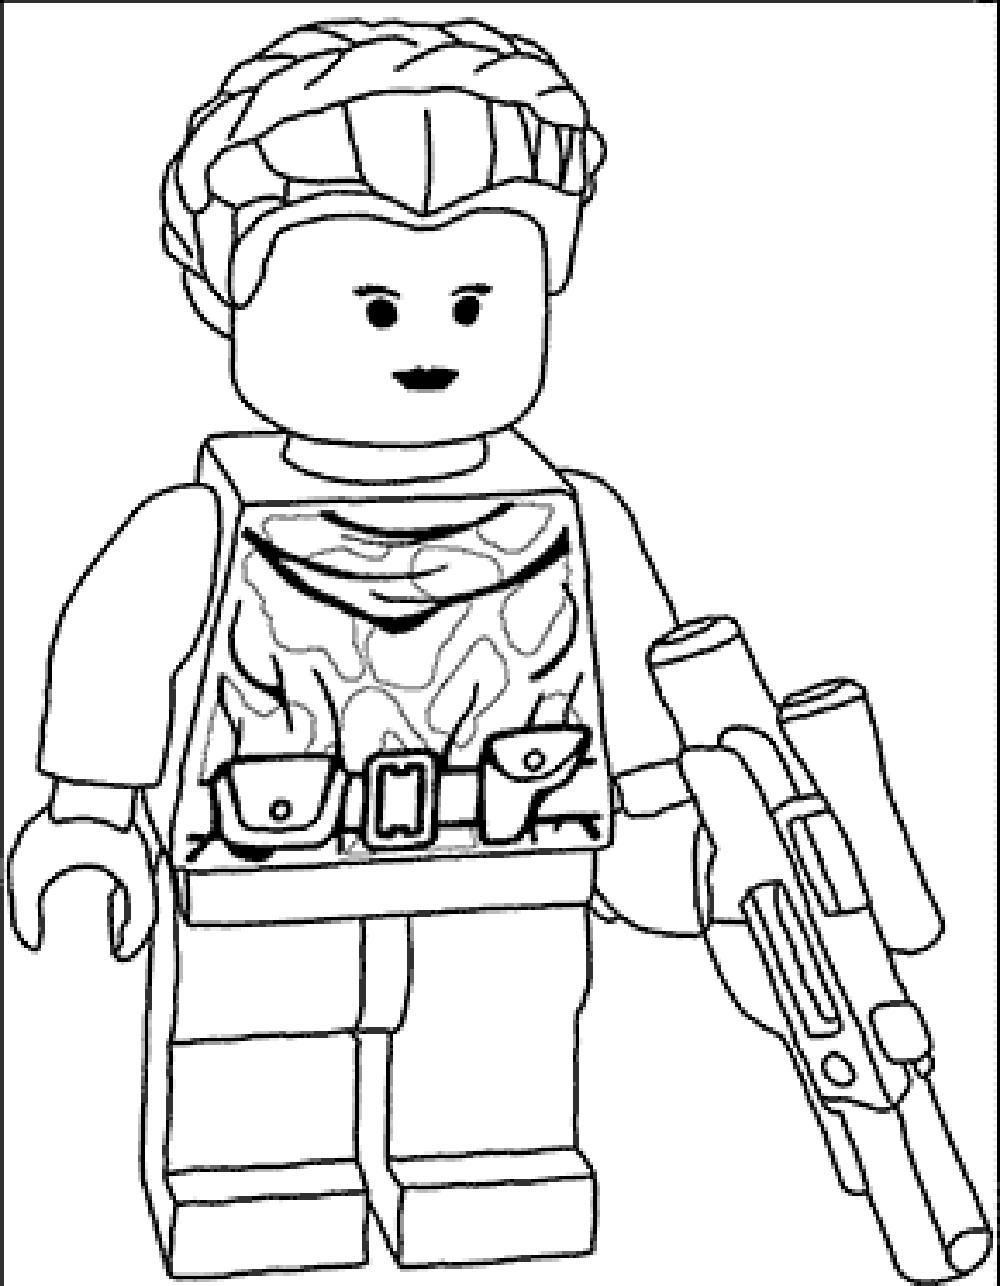 Lego Star Wars Coloring Pages To Print Star Wars Coloring Sheet Lego Coloring Pages Lego Coloring In 2021 Star Wars Coloring Sheet Lego Coloring Pages Lego Coloring